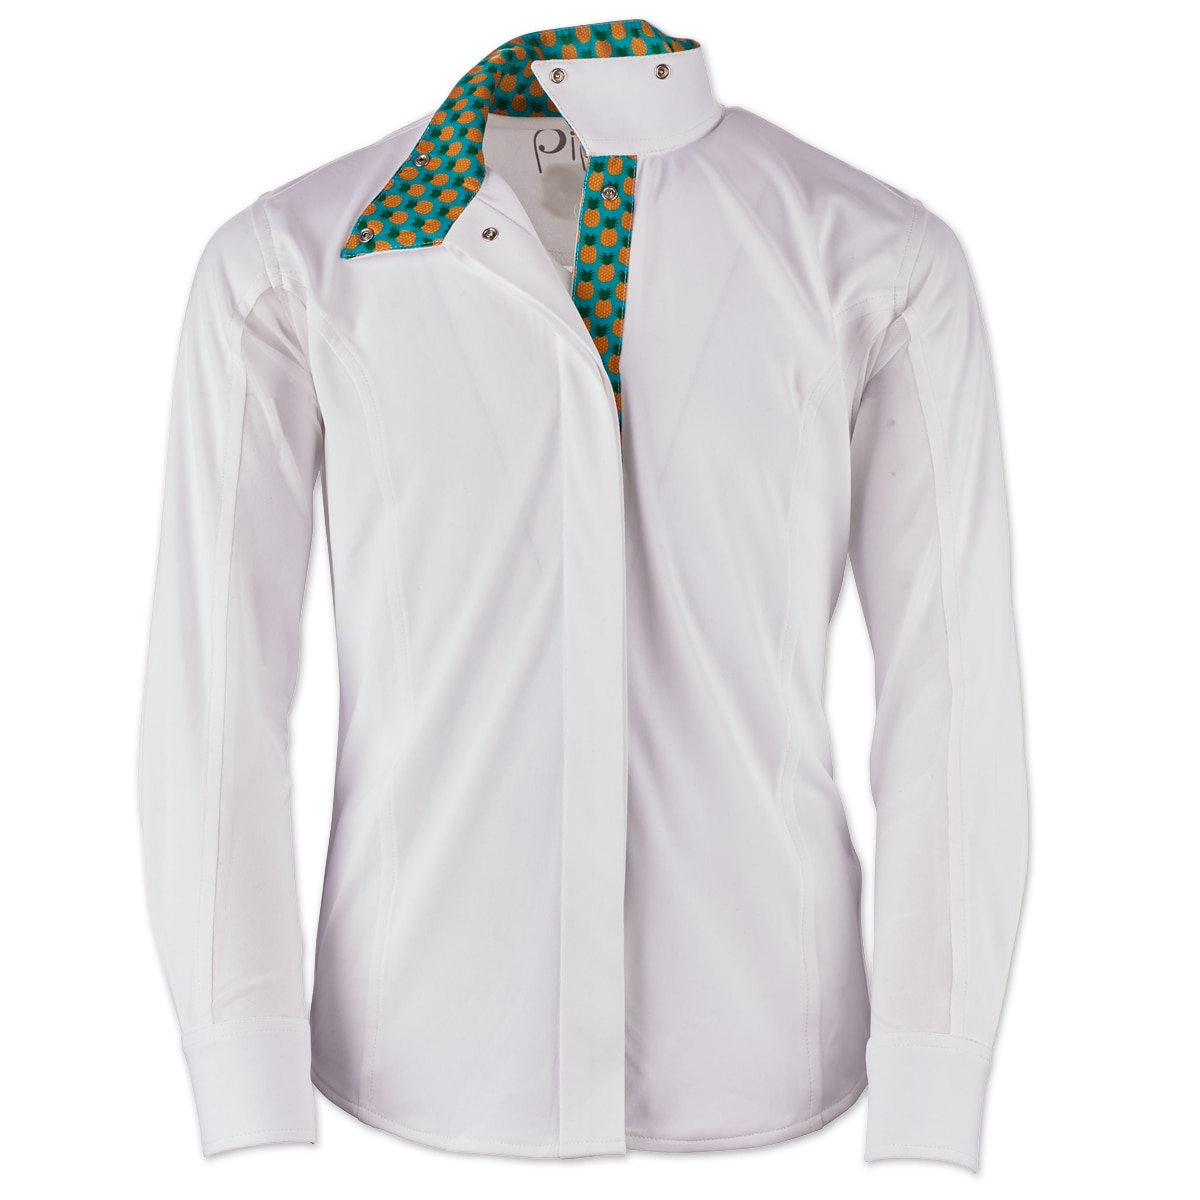 Piper Girls Long Sleeve Show Shirt by SmartPak - Clearance!